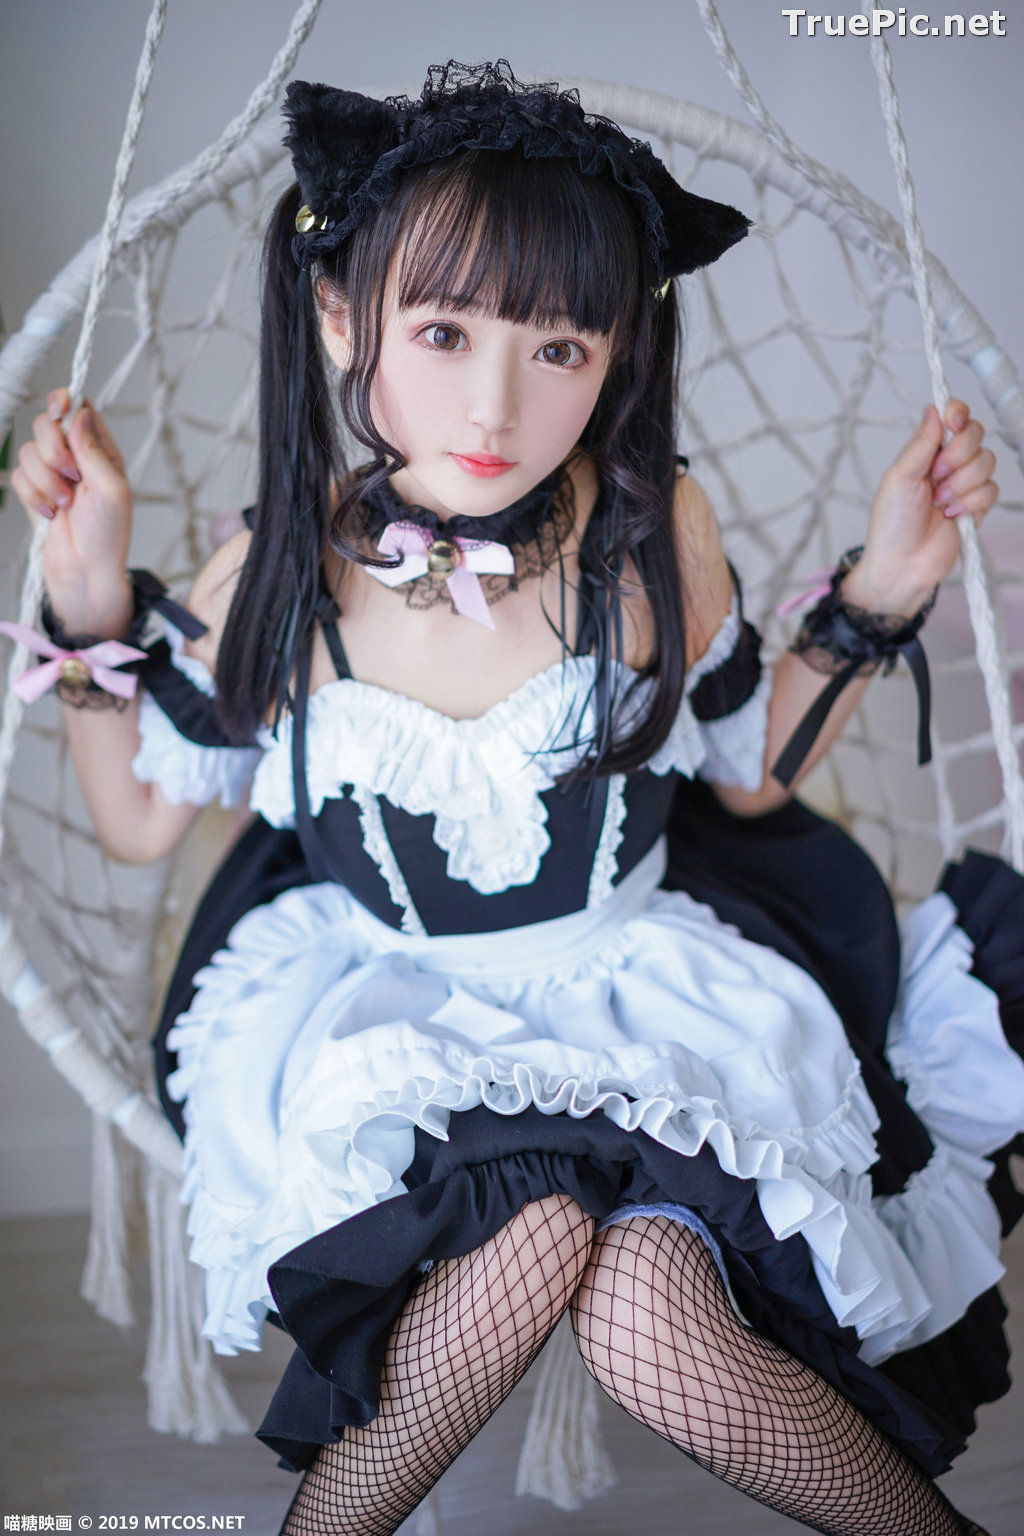 Image [MTCos] 喵糖映画 Vol.051 - Chinese Cute Model - Lovely Maid Cat - TruePic.net - Picture-6